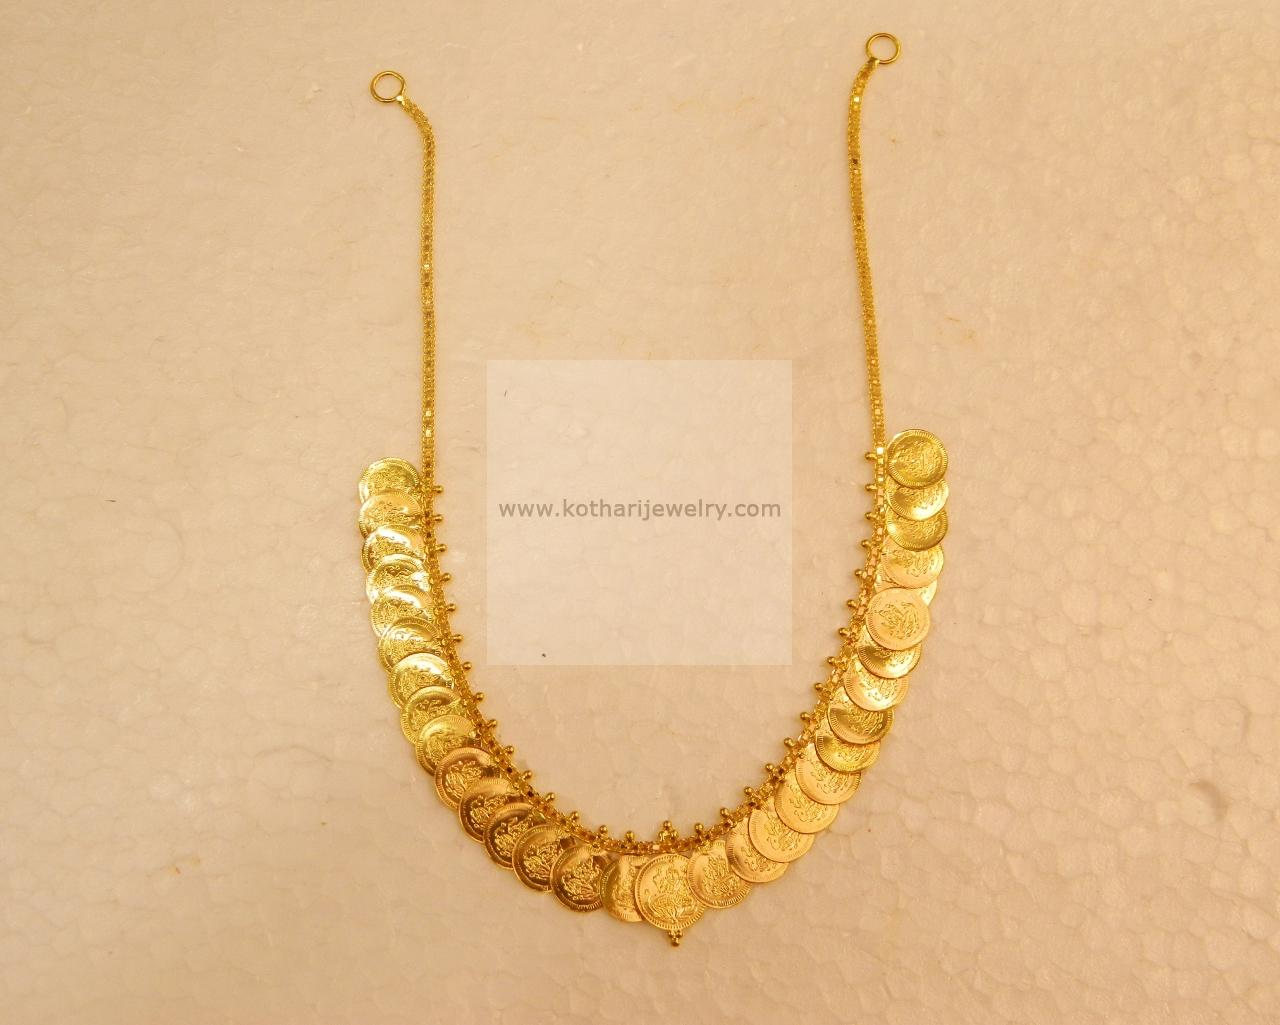 Necklaces / Harams - Gold Jewellery Necklaces / Harams (NK09190919 ...